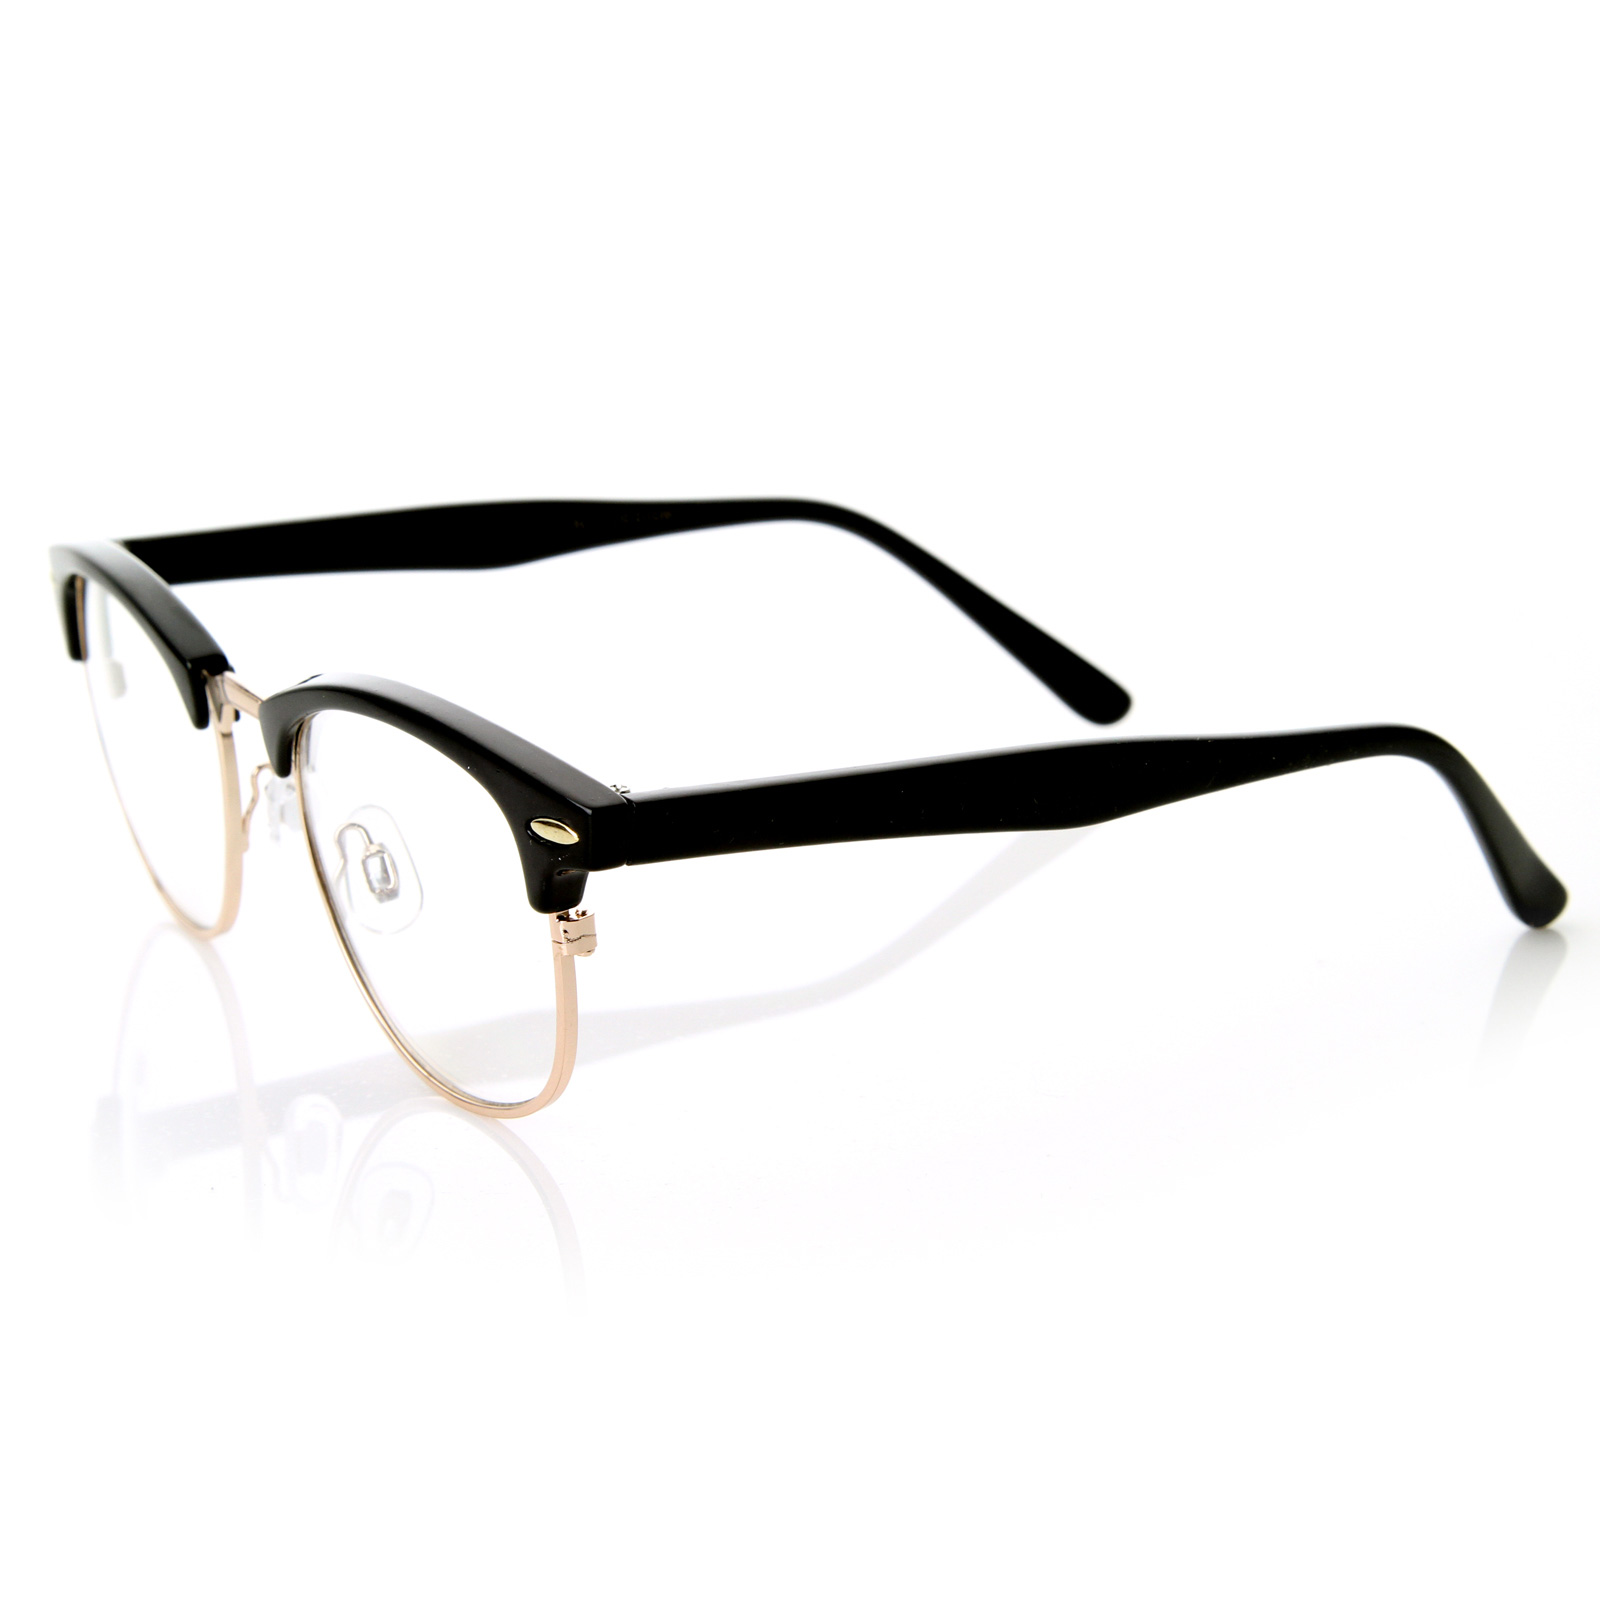 optical quality horned clear lens rx able half frame